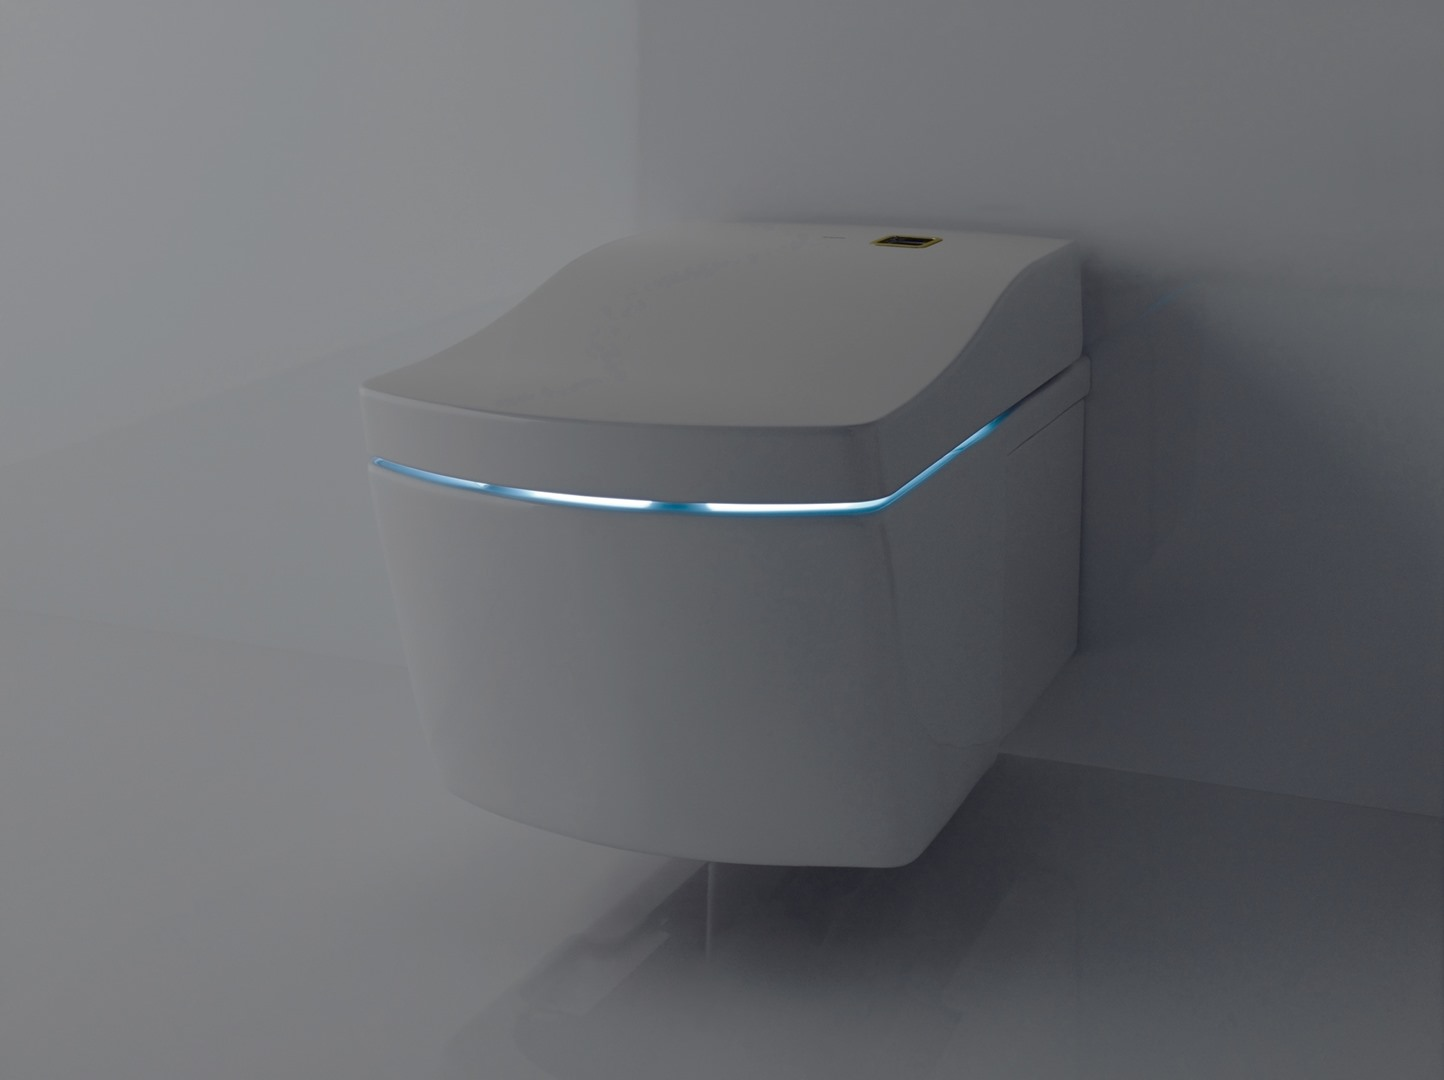 NEOREST AC Actilight Cleansing Technology 5x7 (Copy)